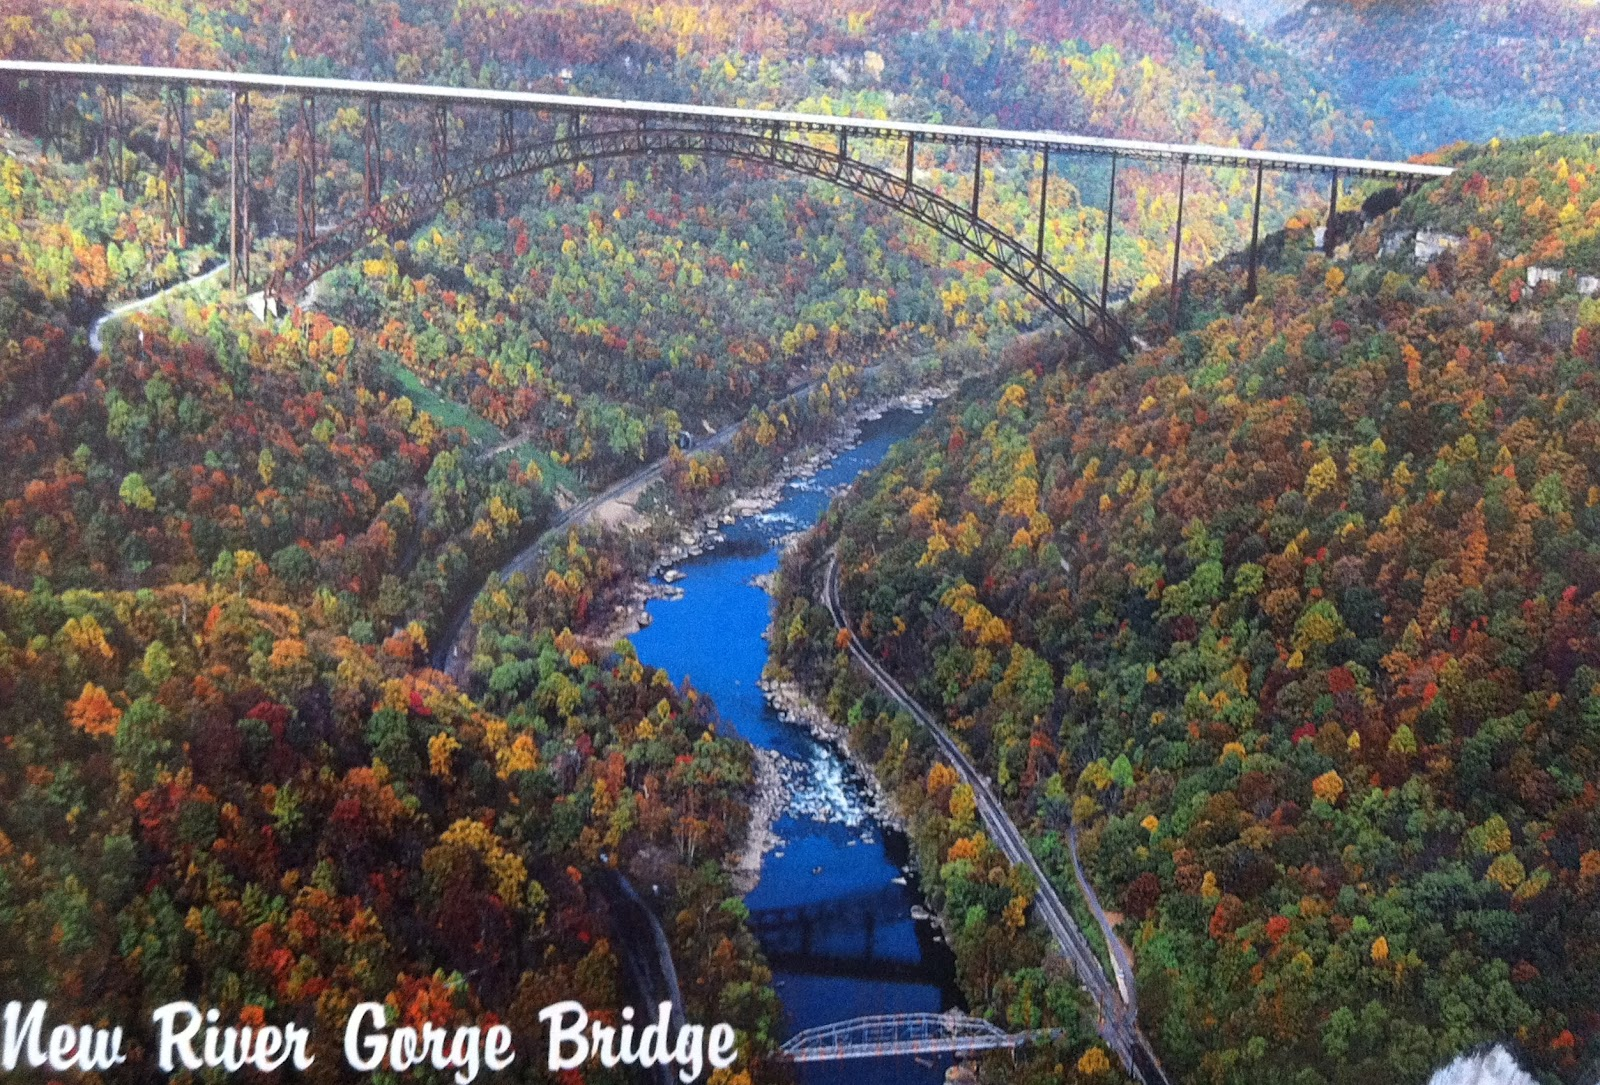 This steel arch bridge hovers over the new river gorge in west